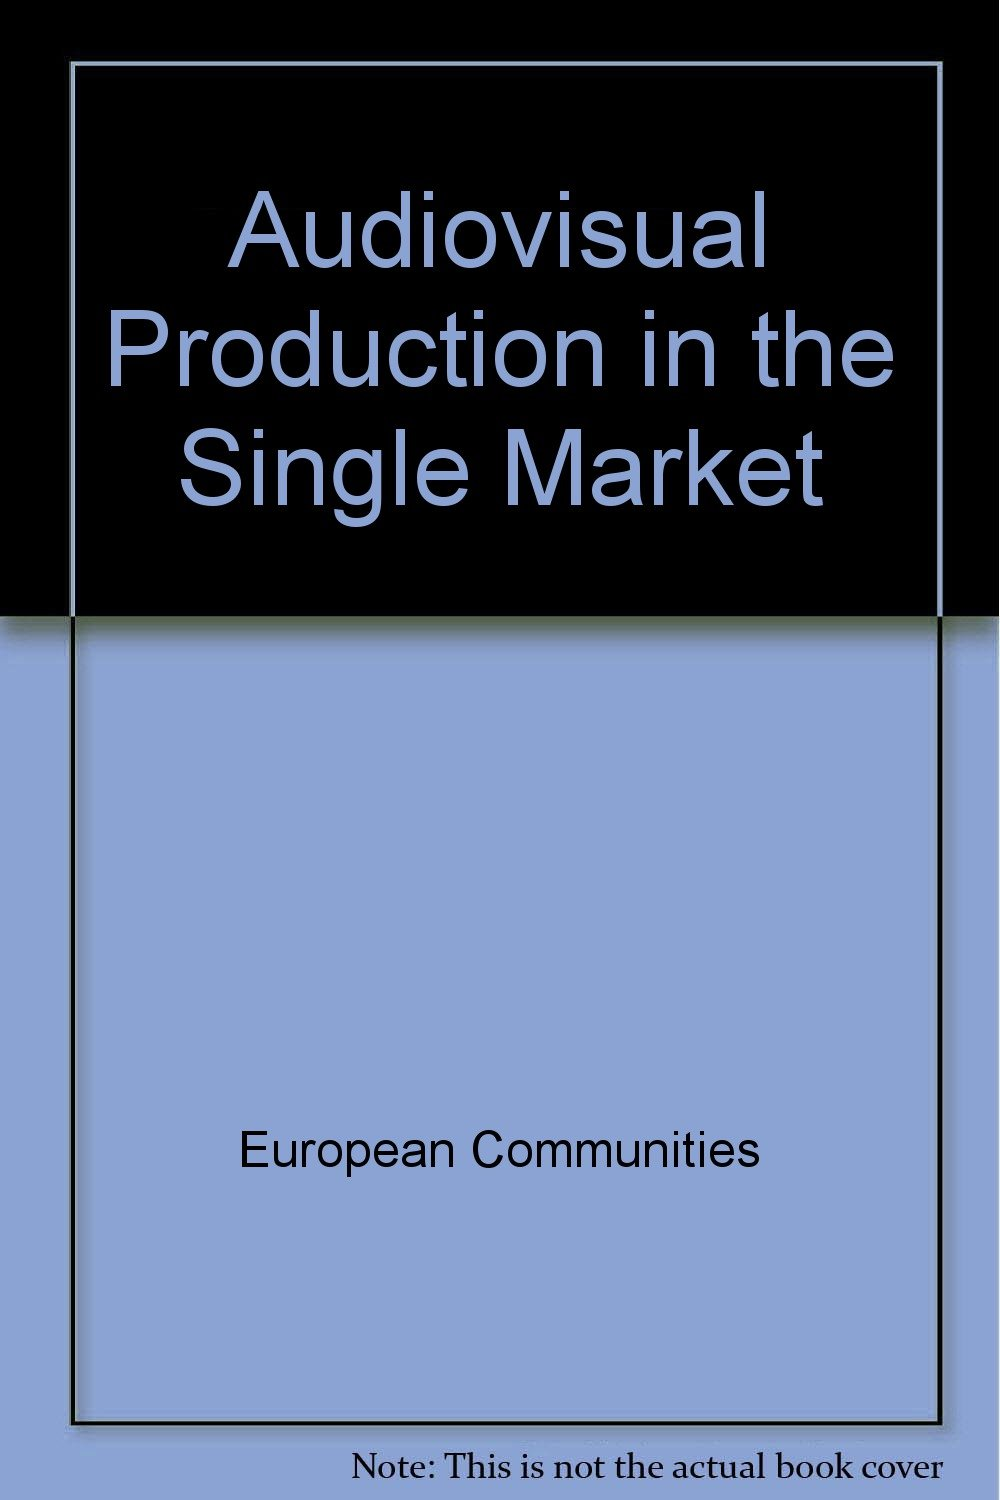 Audiovisual Production in the Single Market